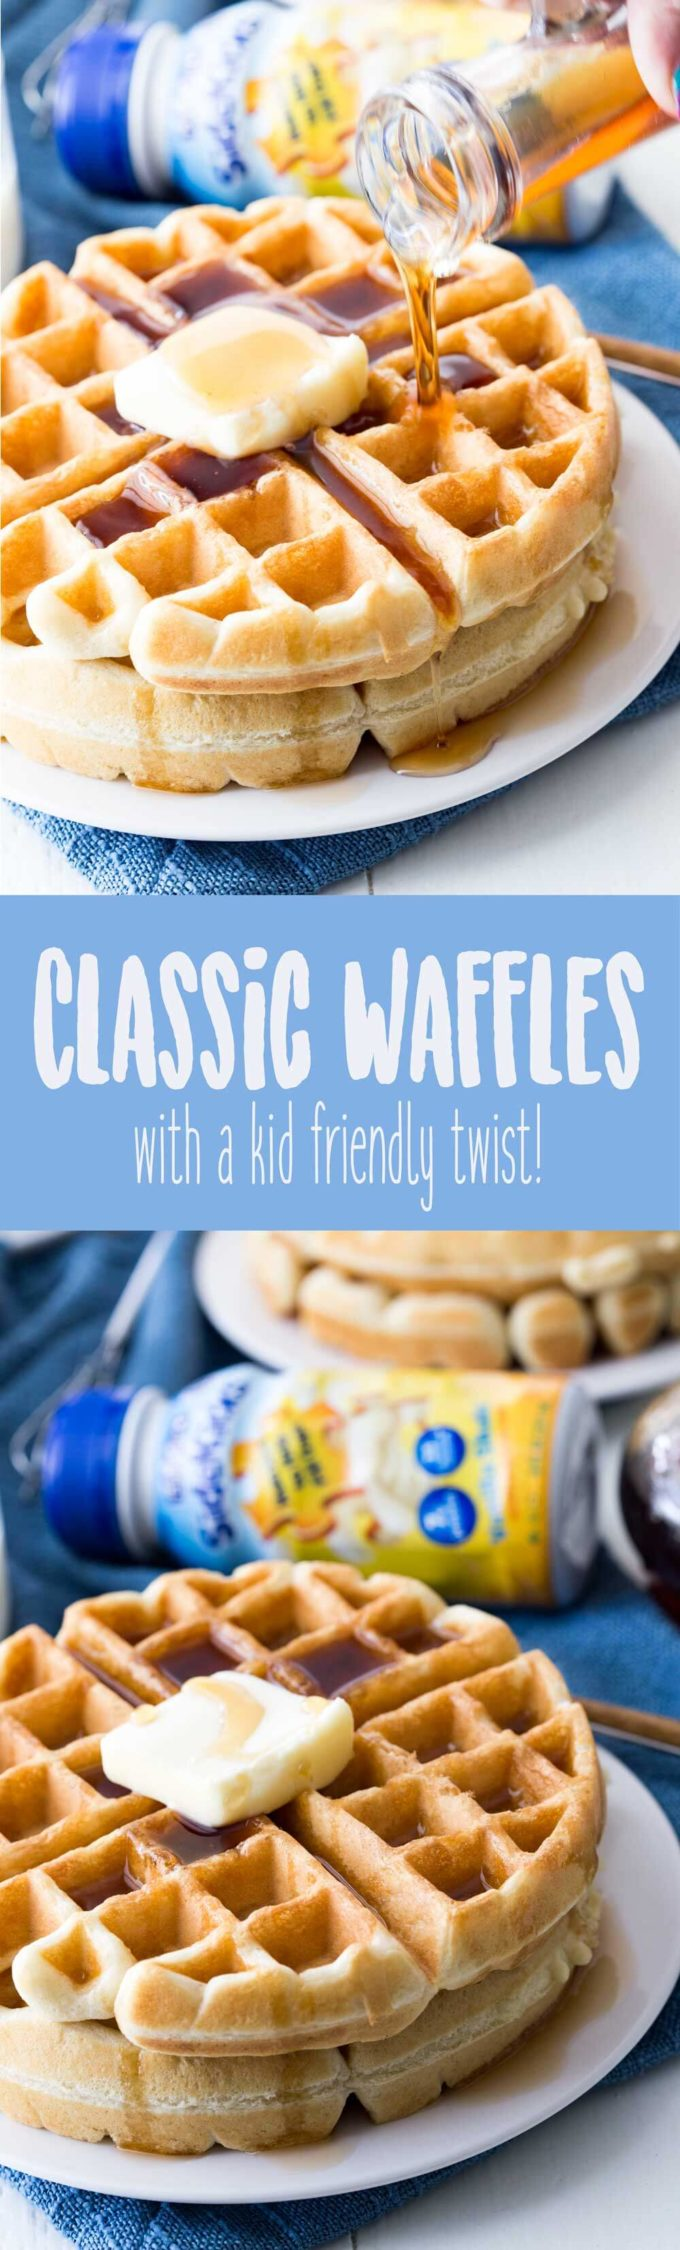 Classic waffle recipe with a fun kid friendly twist to make it even more awesome!